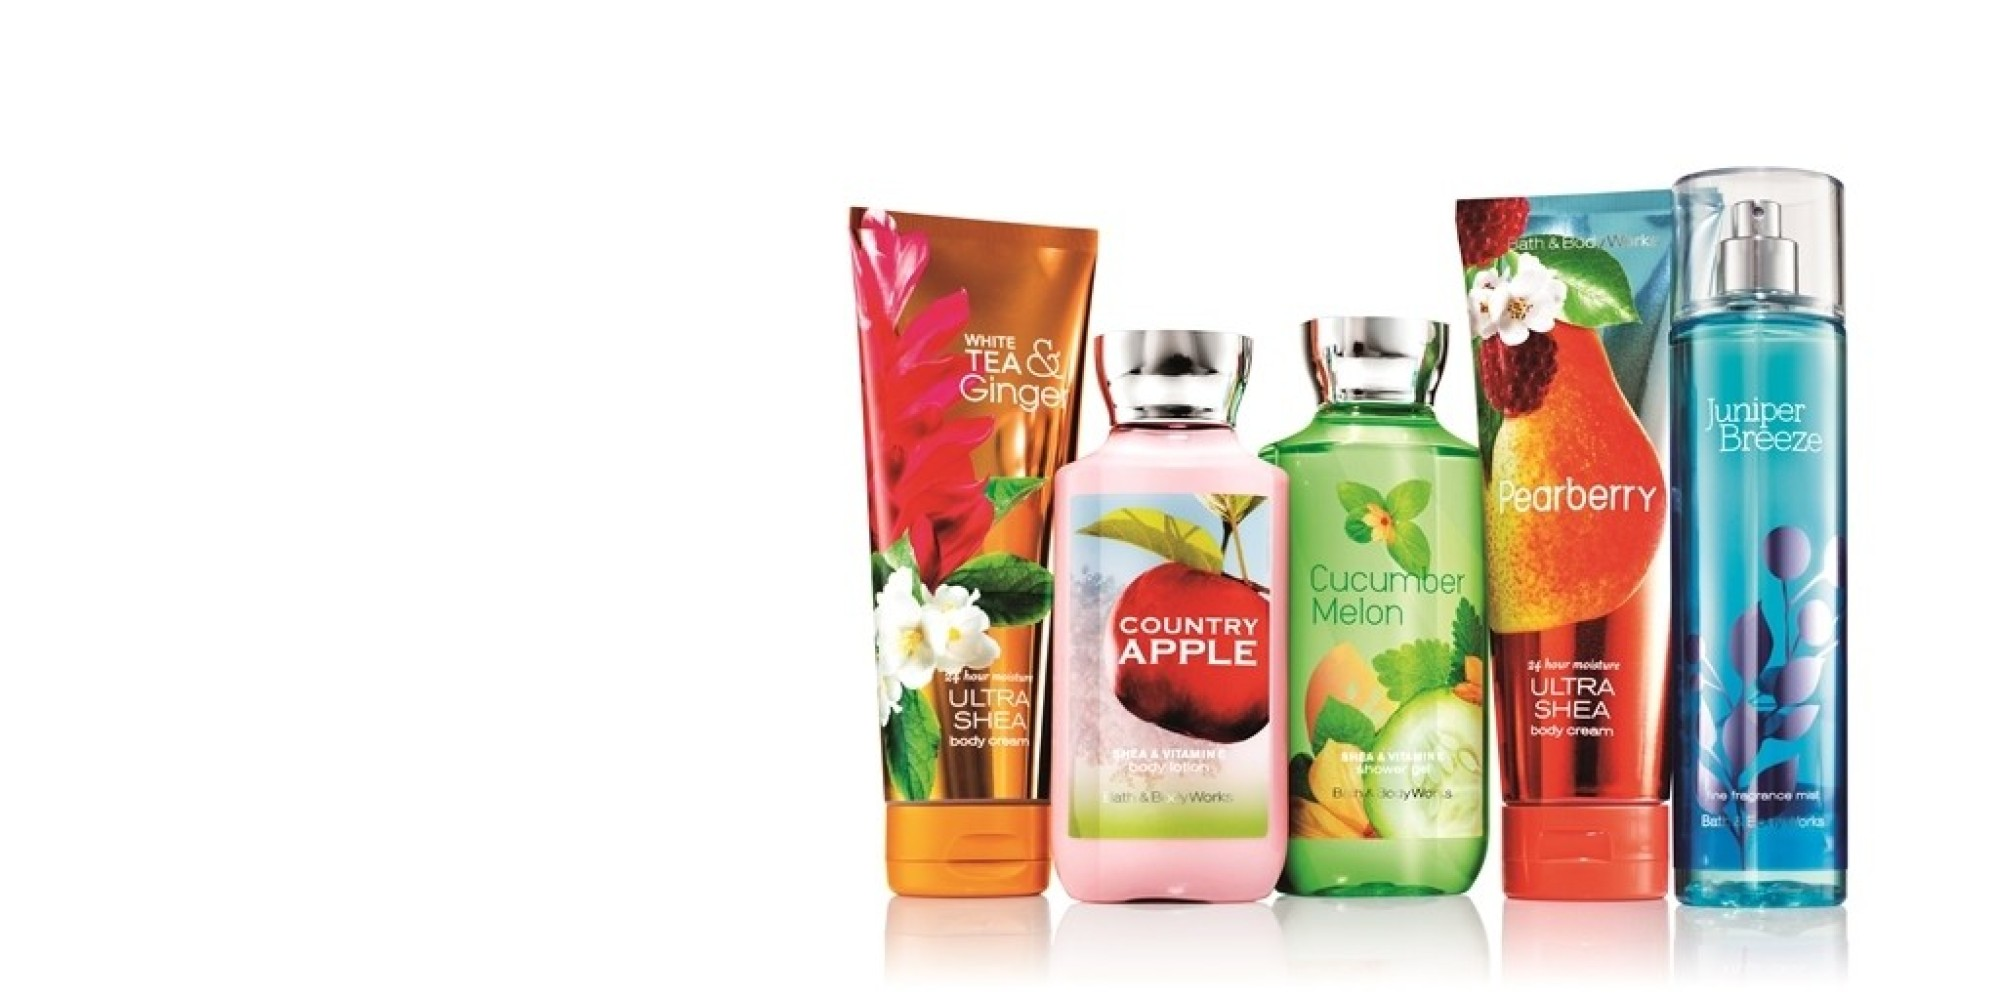 Bath and body works holiday scents - How We Re Reacting To Bath And Body Works Reissuing The Most Nostalgic Scents Of All Time Huffpost